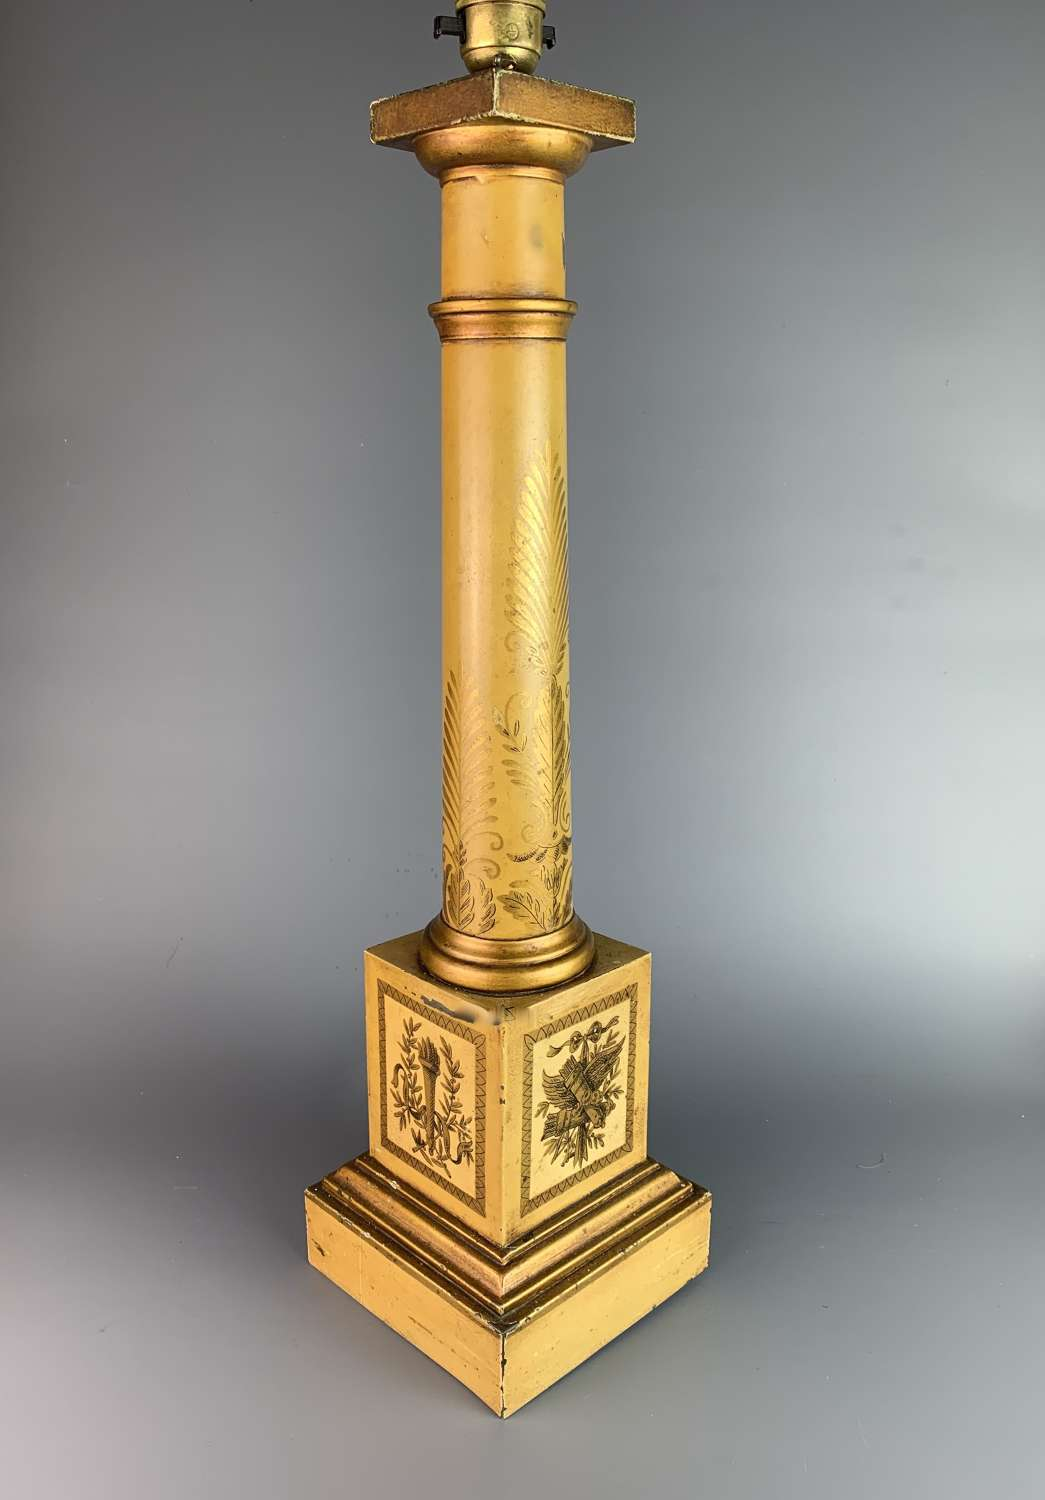 Vintage Toleware Table Lamp in Empire Style